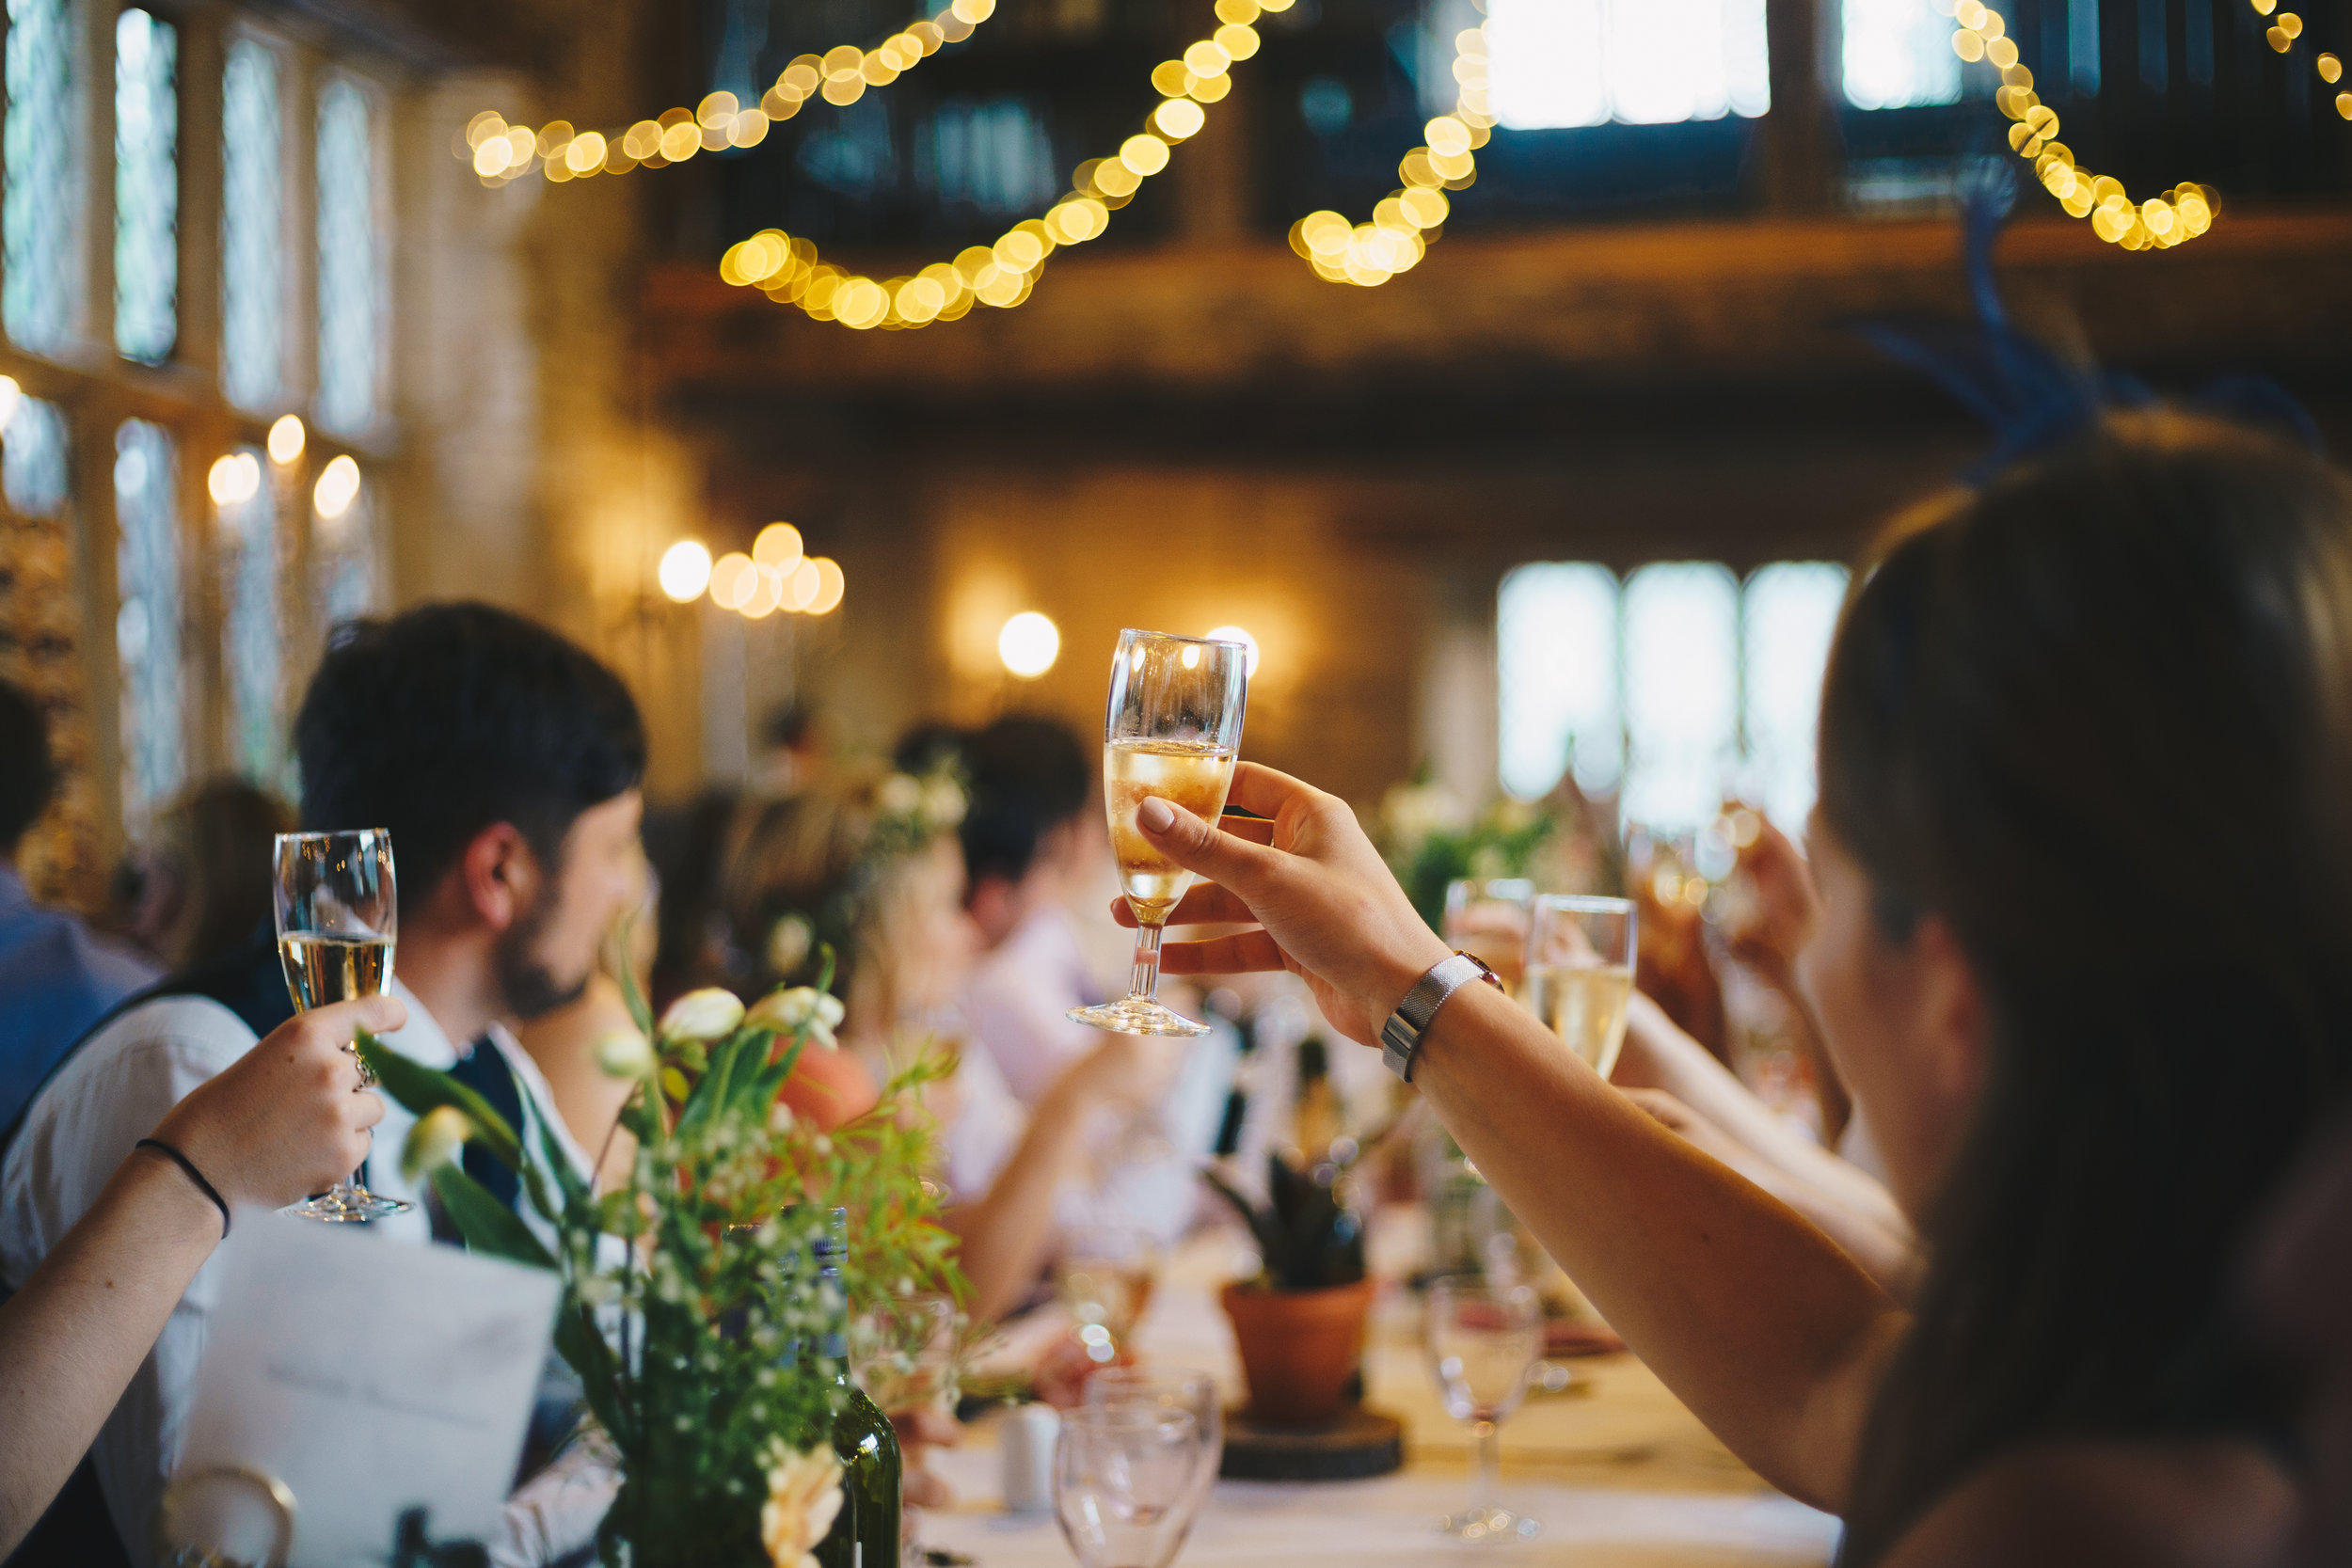 Creating Exceptional Experiences - Personalized Events In A Welcoming, Flexible Space -